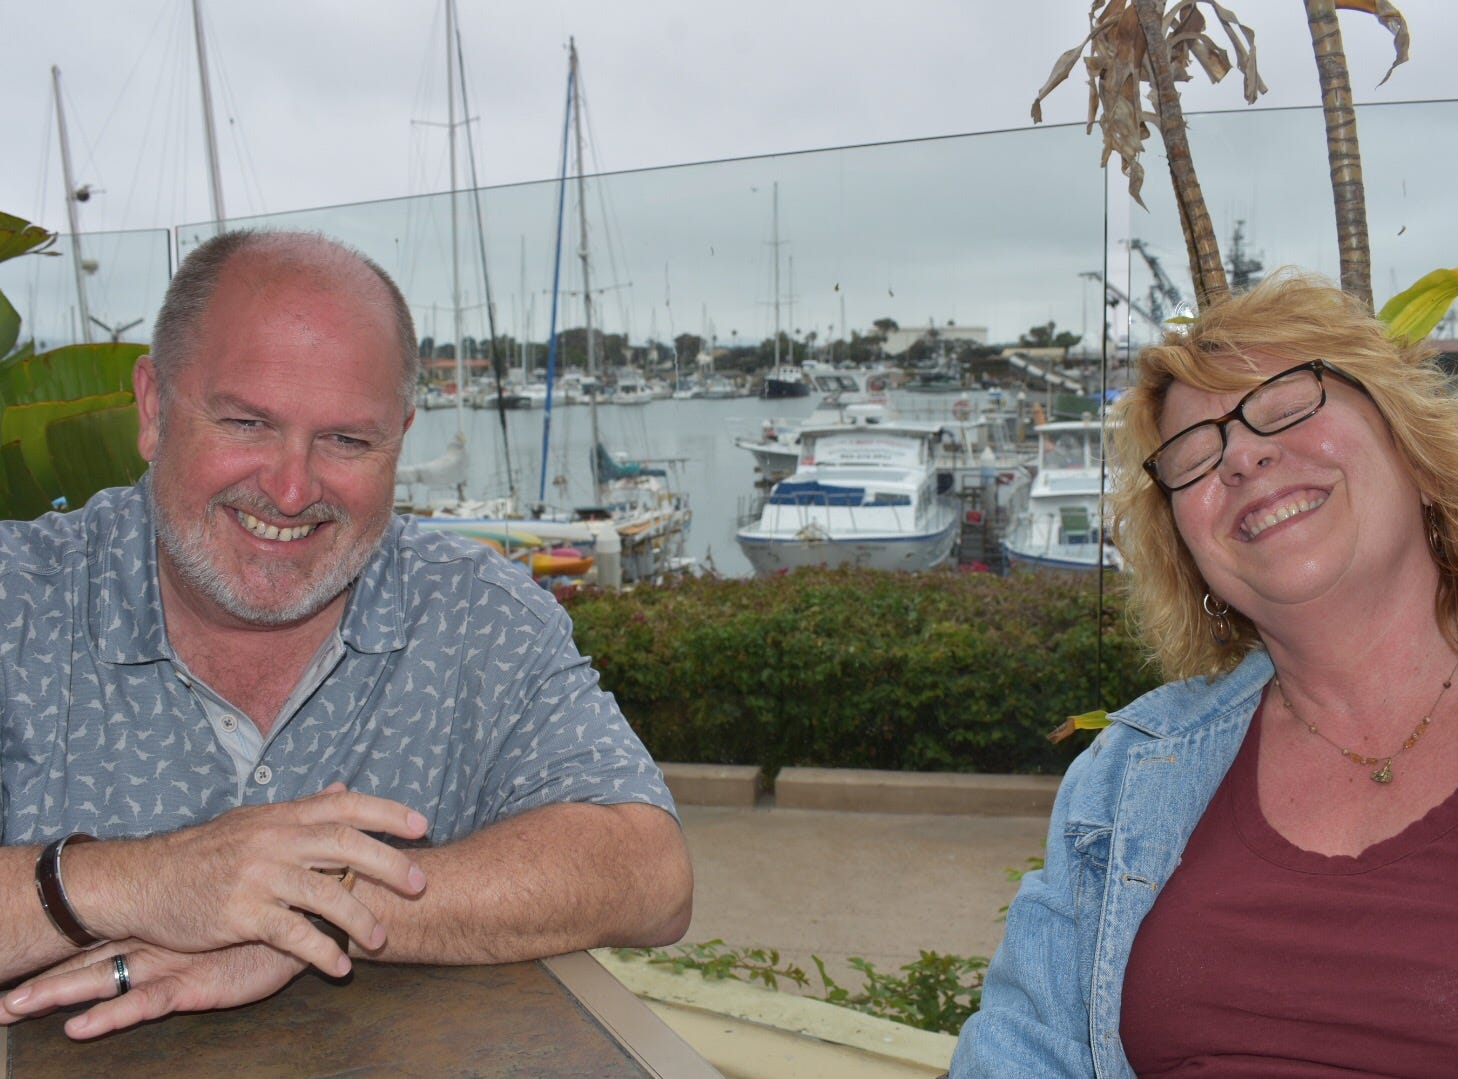 Kris Kaufmann, of Pittsburgh, and Katherine Hamilton, of Camarillo, met earlier this month after DNA tests indicated they are siblings.